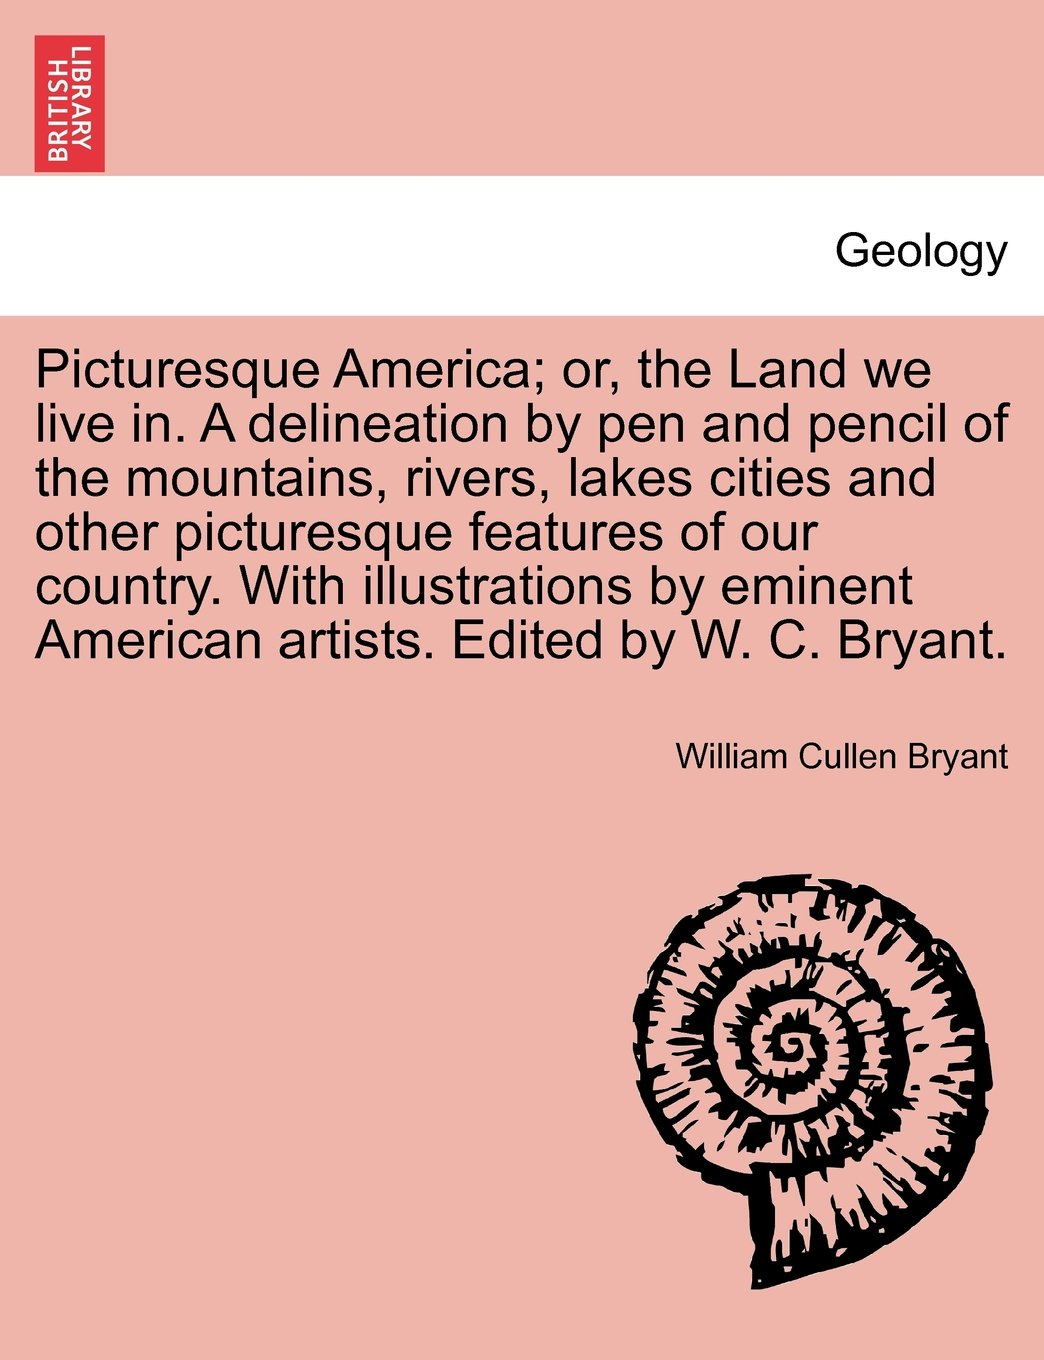 Picturesque America; or, the Land we live in. A delineation by pen and pencil of the mountains, rivers, lakes cities and other picturesque features of ... artists. Edited by W. C. Bryant. Vol. I pdf